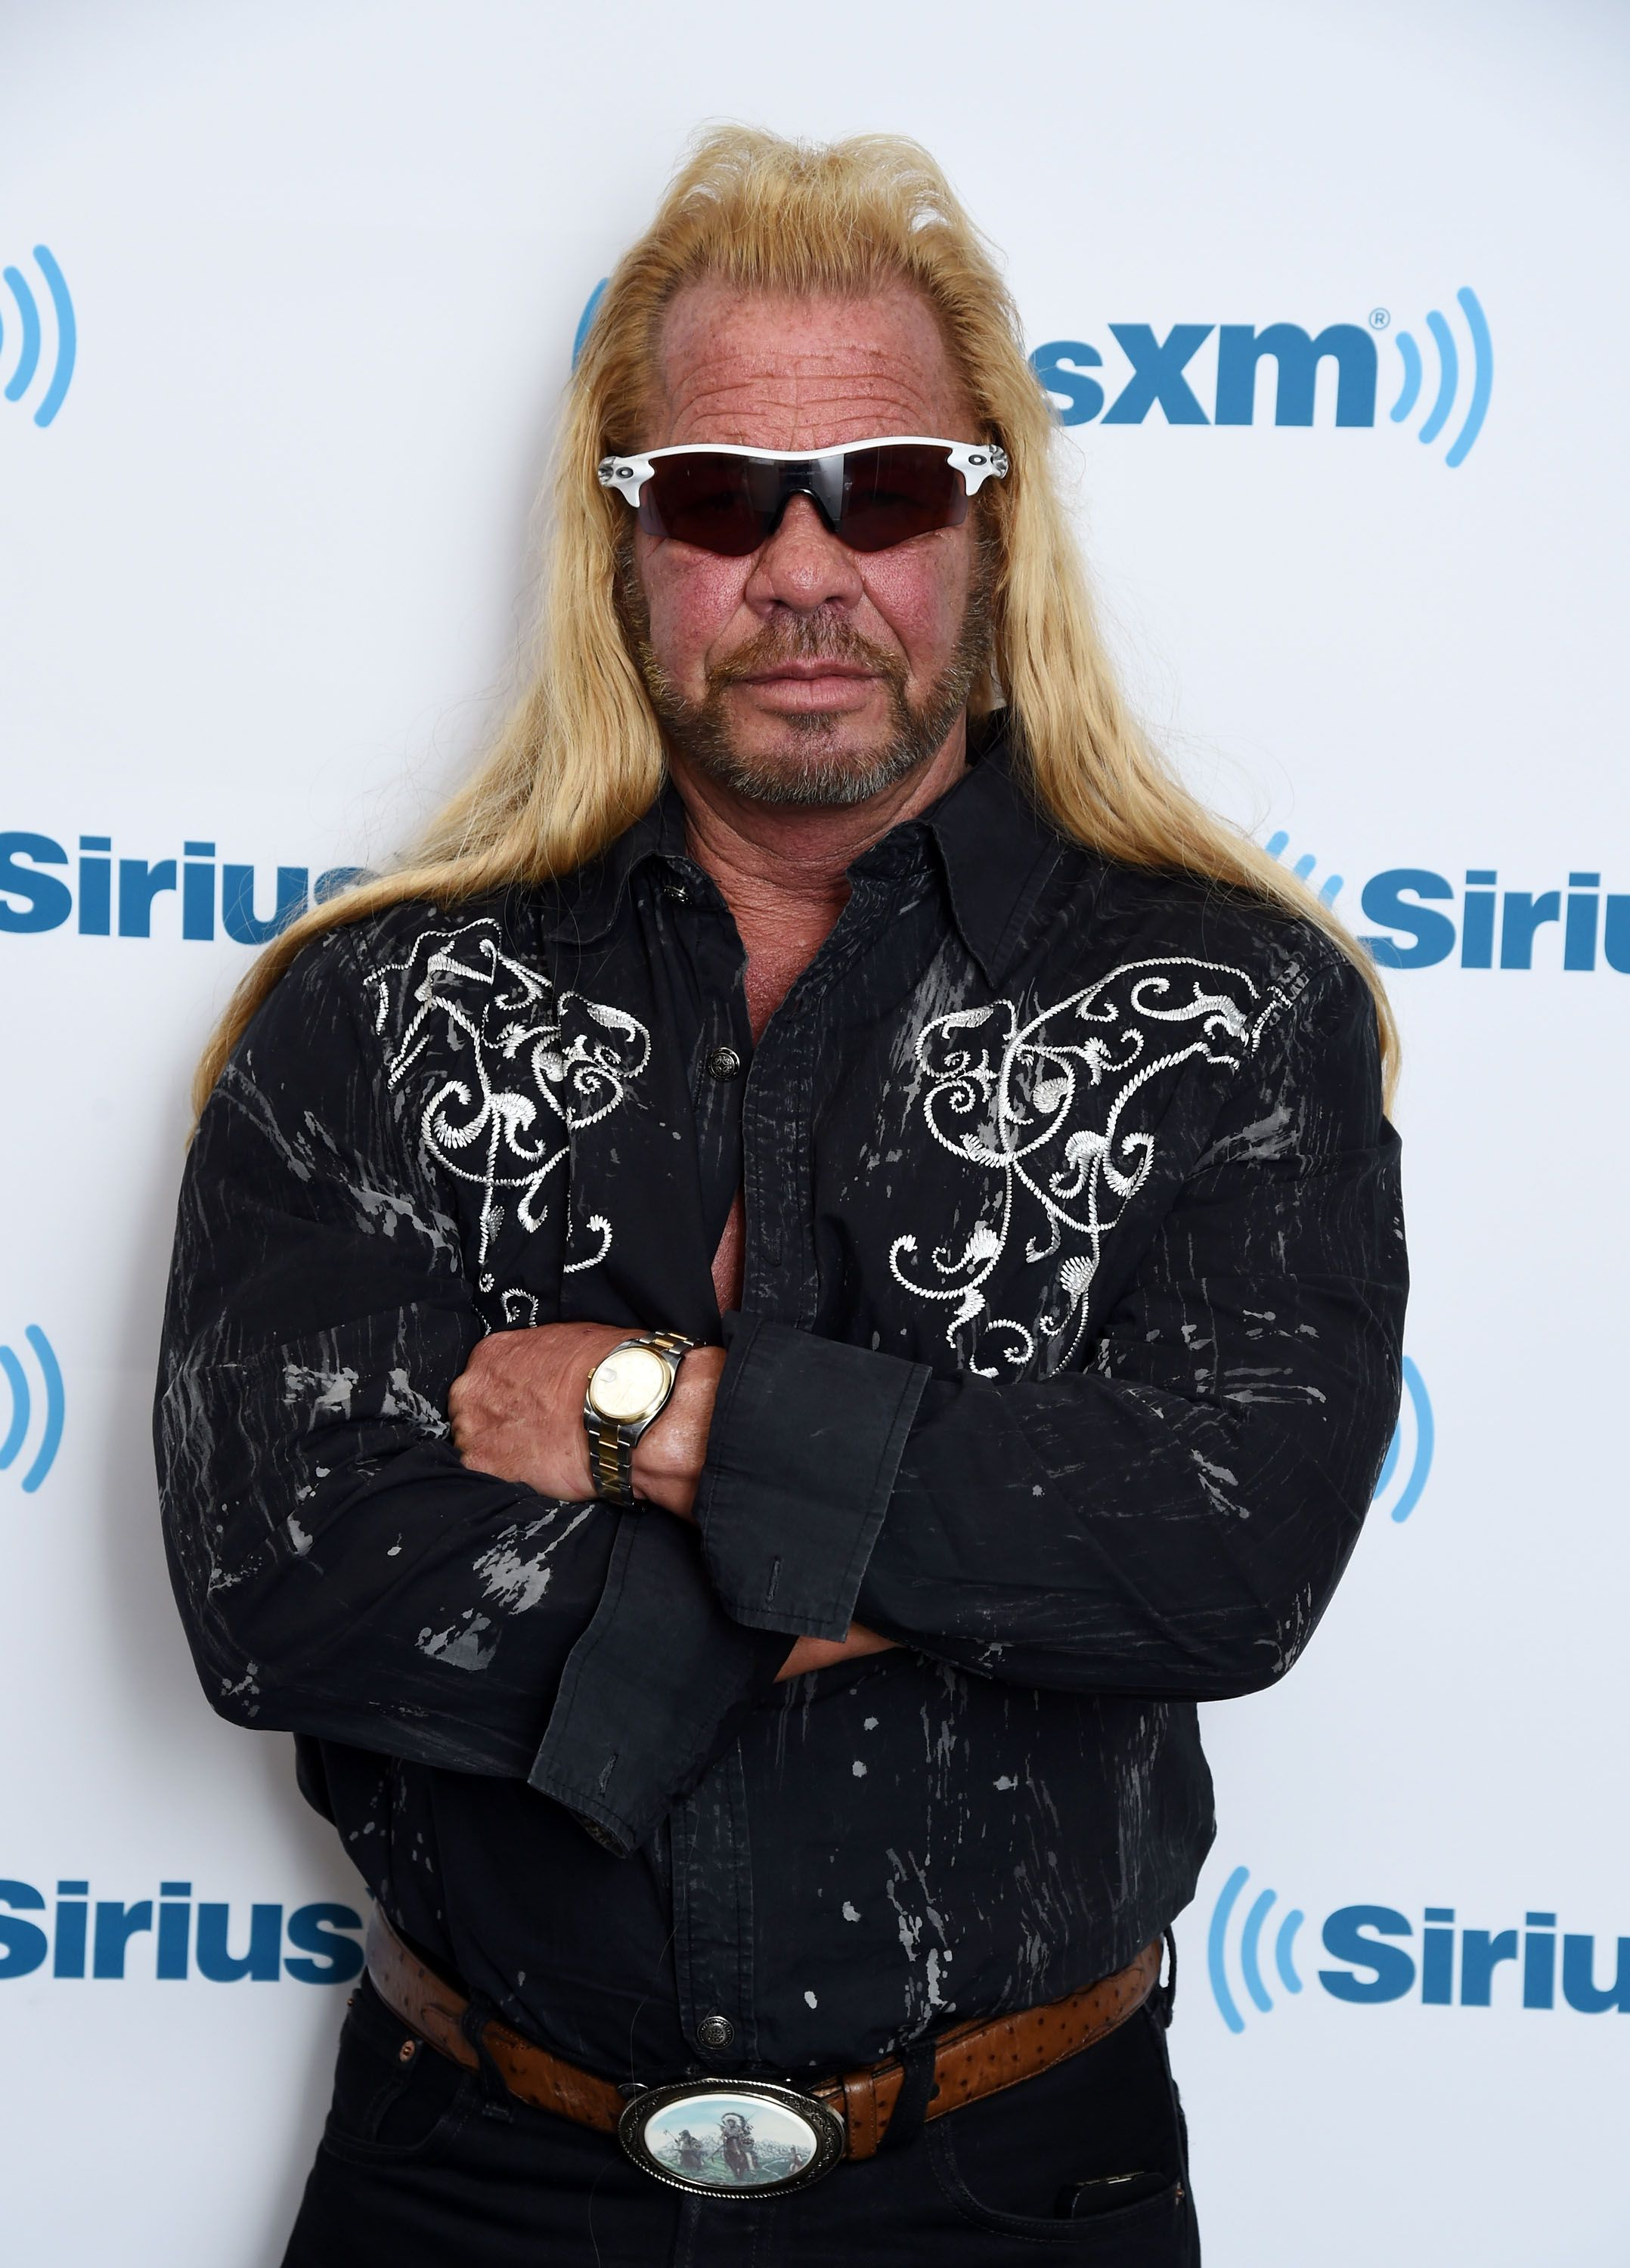 Dog the Bounty Hunter, Duane Chapman visits the SiriusXM Studios on April 24, 2015.   Photo: Getty Images